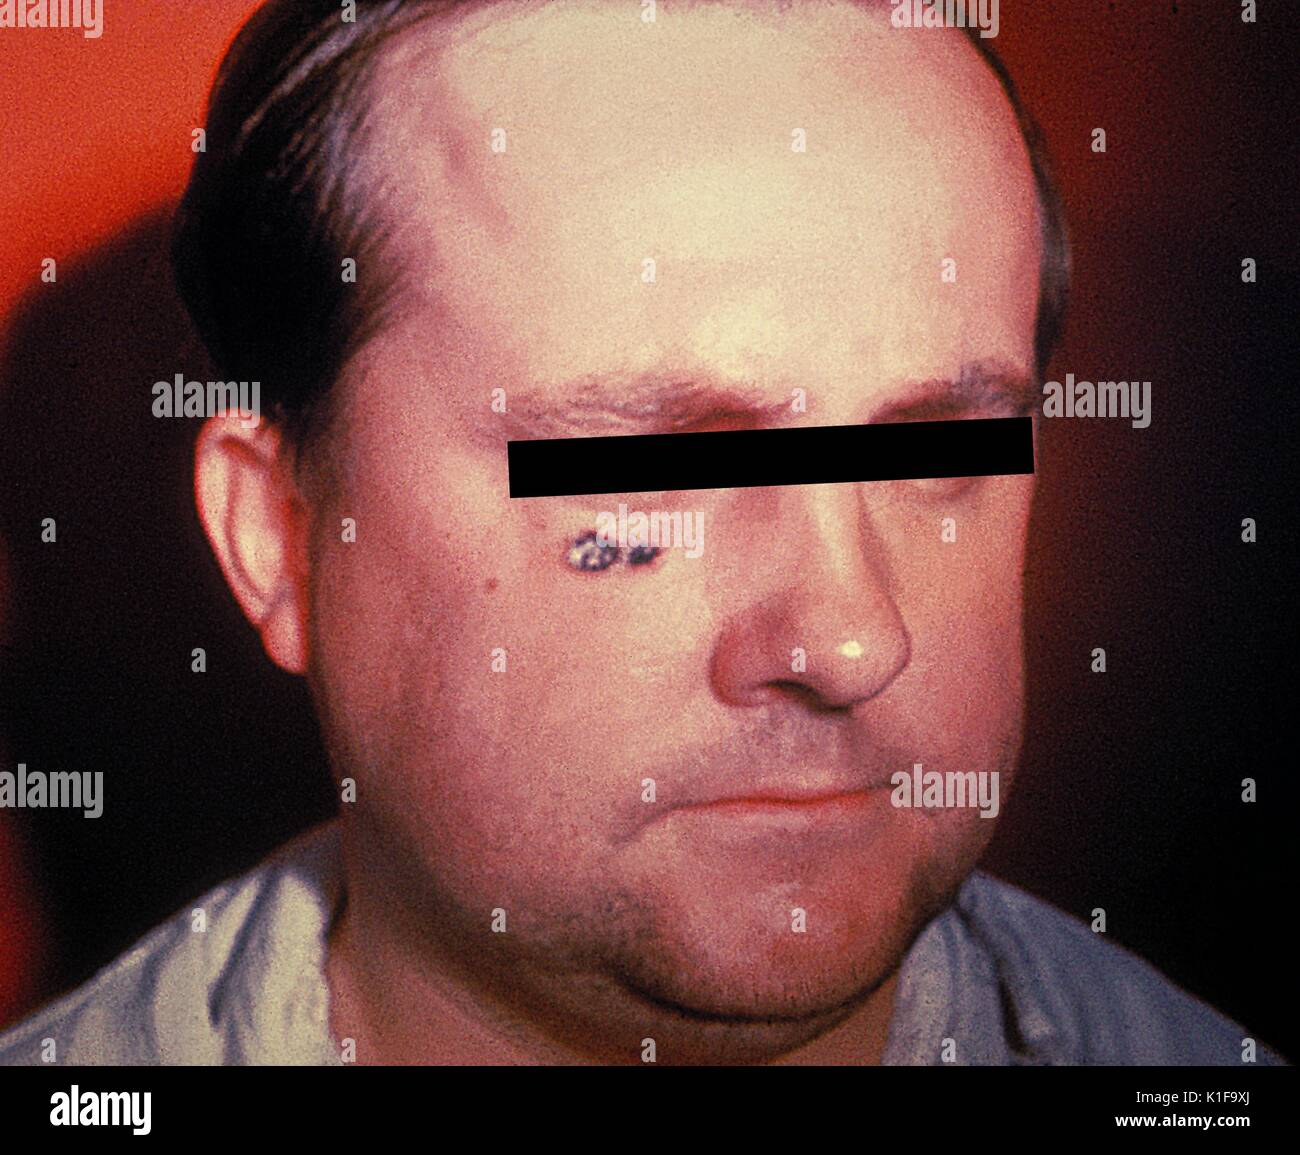 Anthrax skin lesion on face of man Cutaneous Image courtesy CDC, 1974. - Stock Image